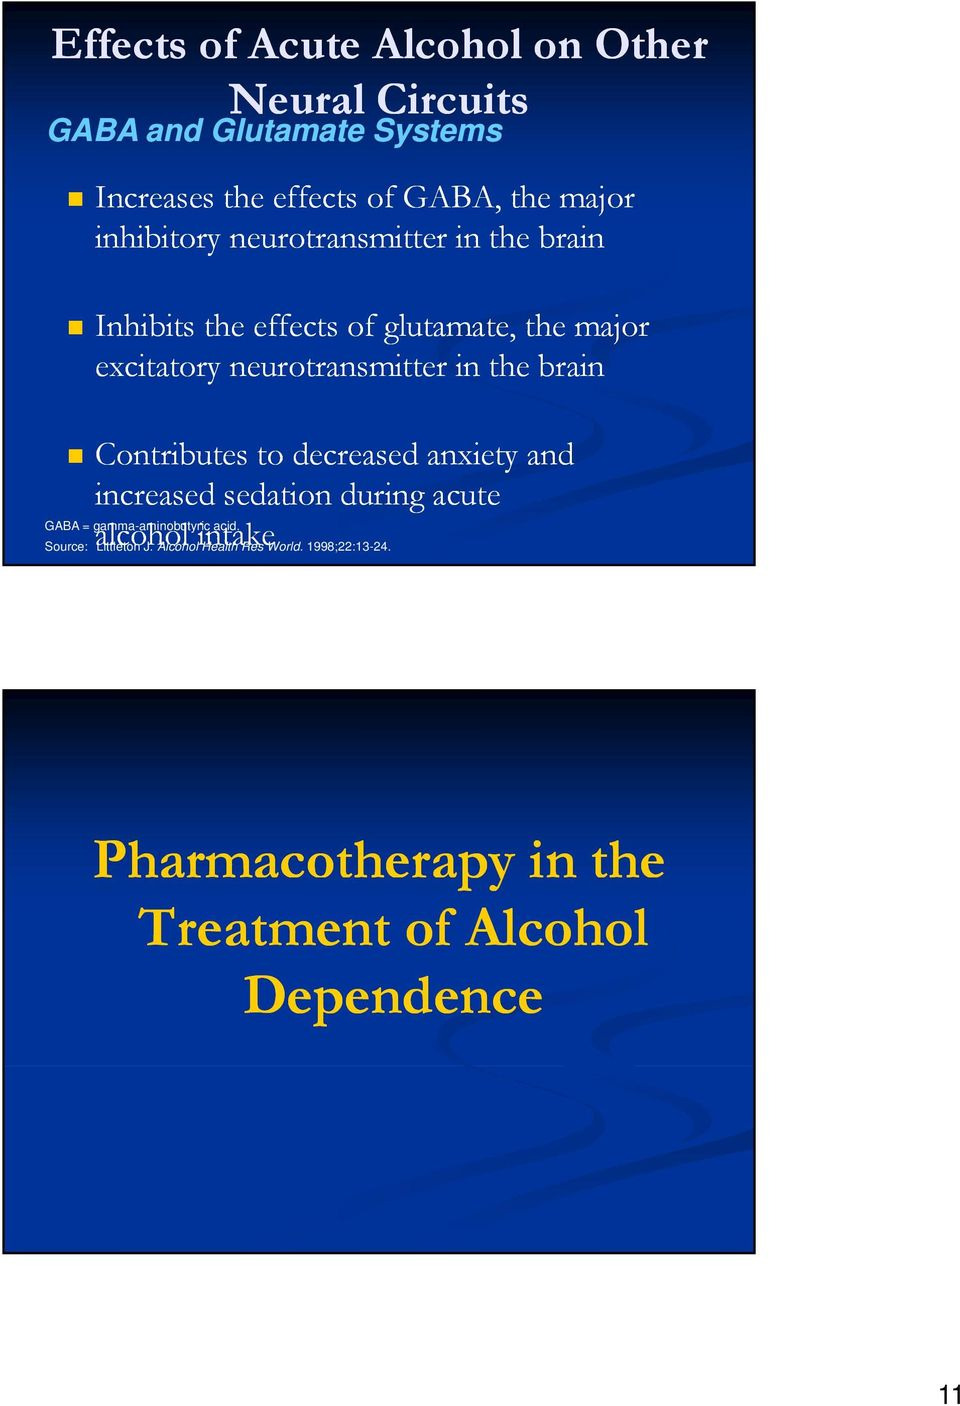 the brain Contributes to decreased anxiety and increased sedation during acute alcohol intake GABA = gamma-aminobutyric